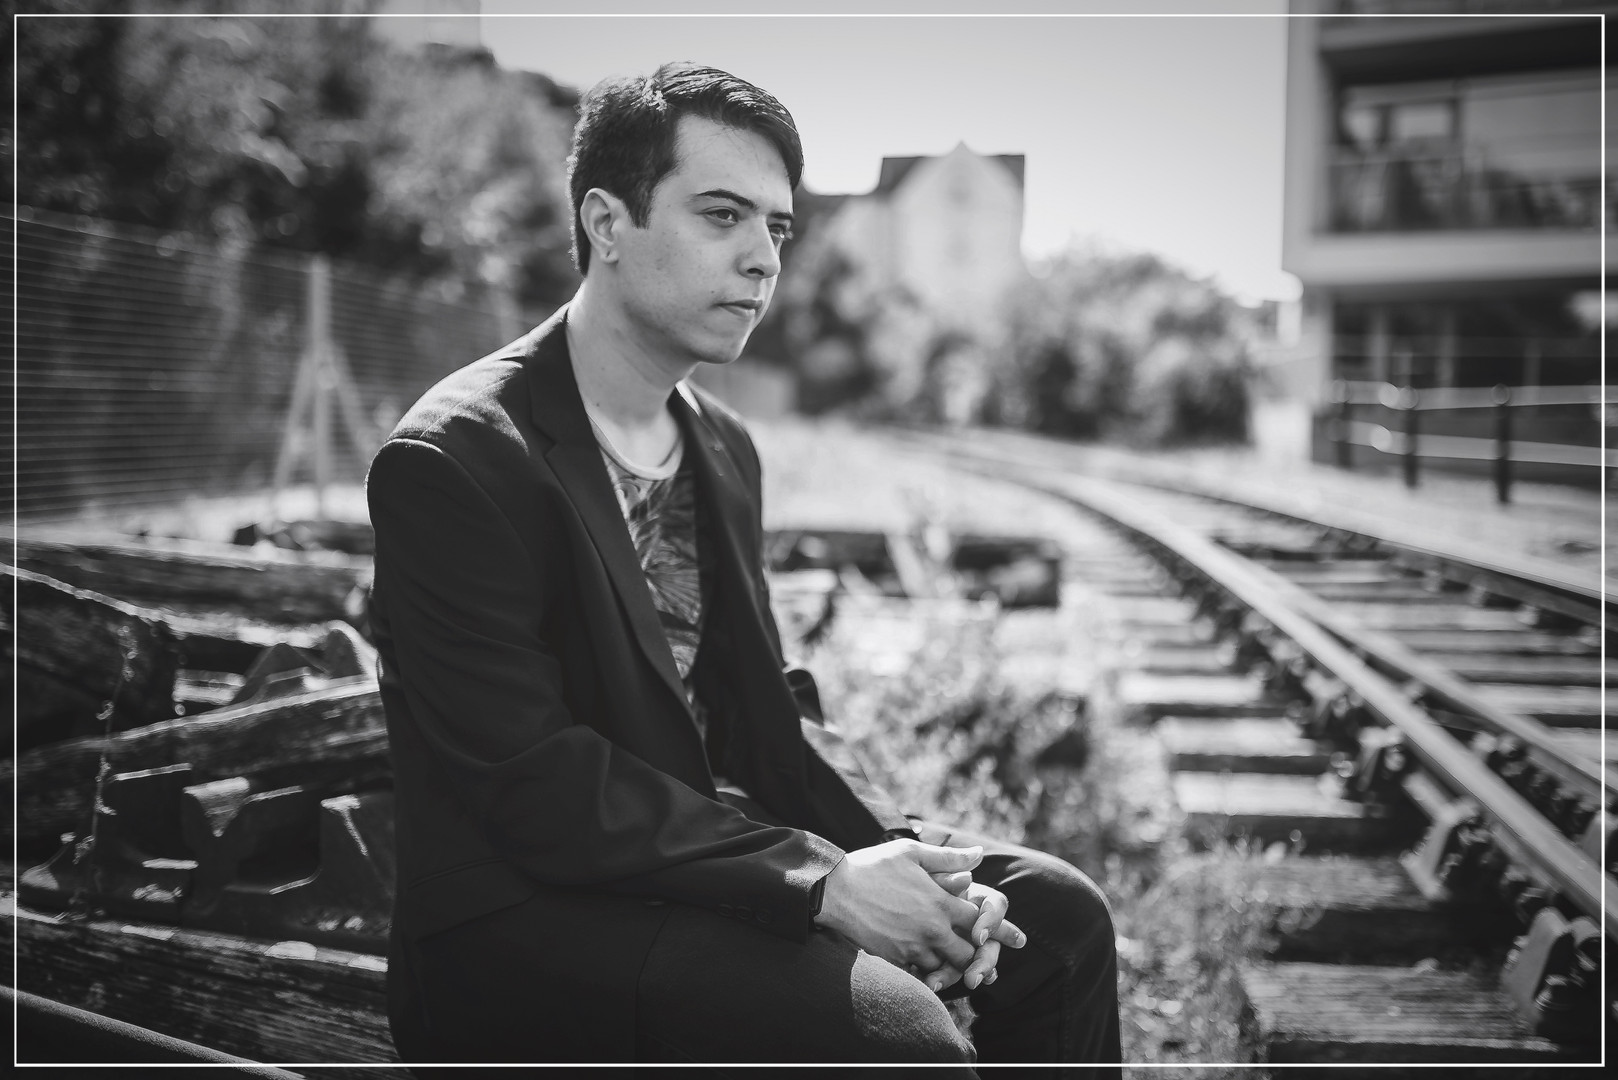 Bristol photoshoot June 2017 (Trainlines by docks)